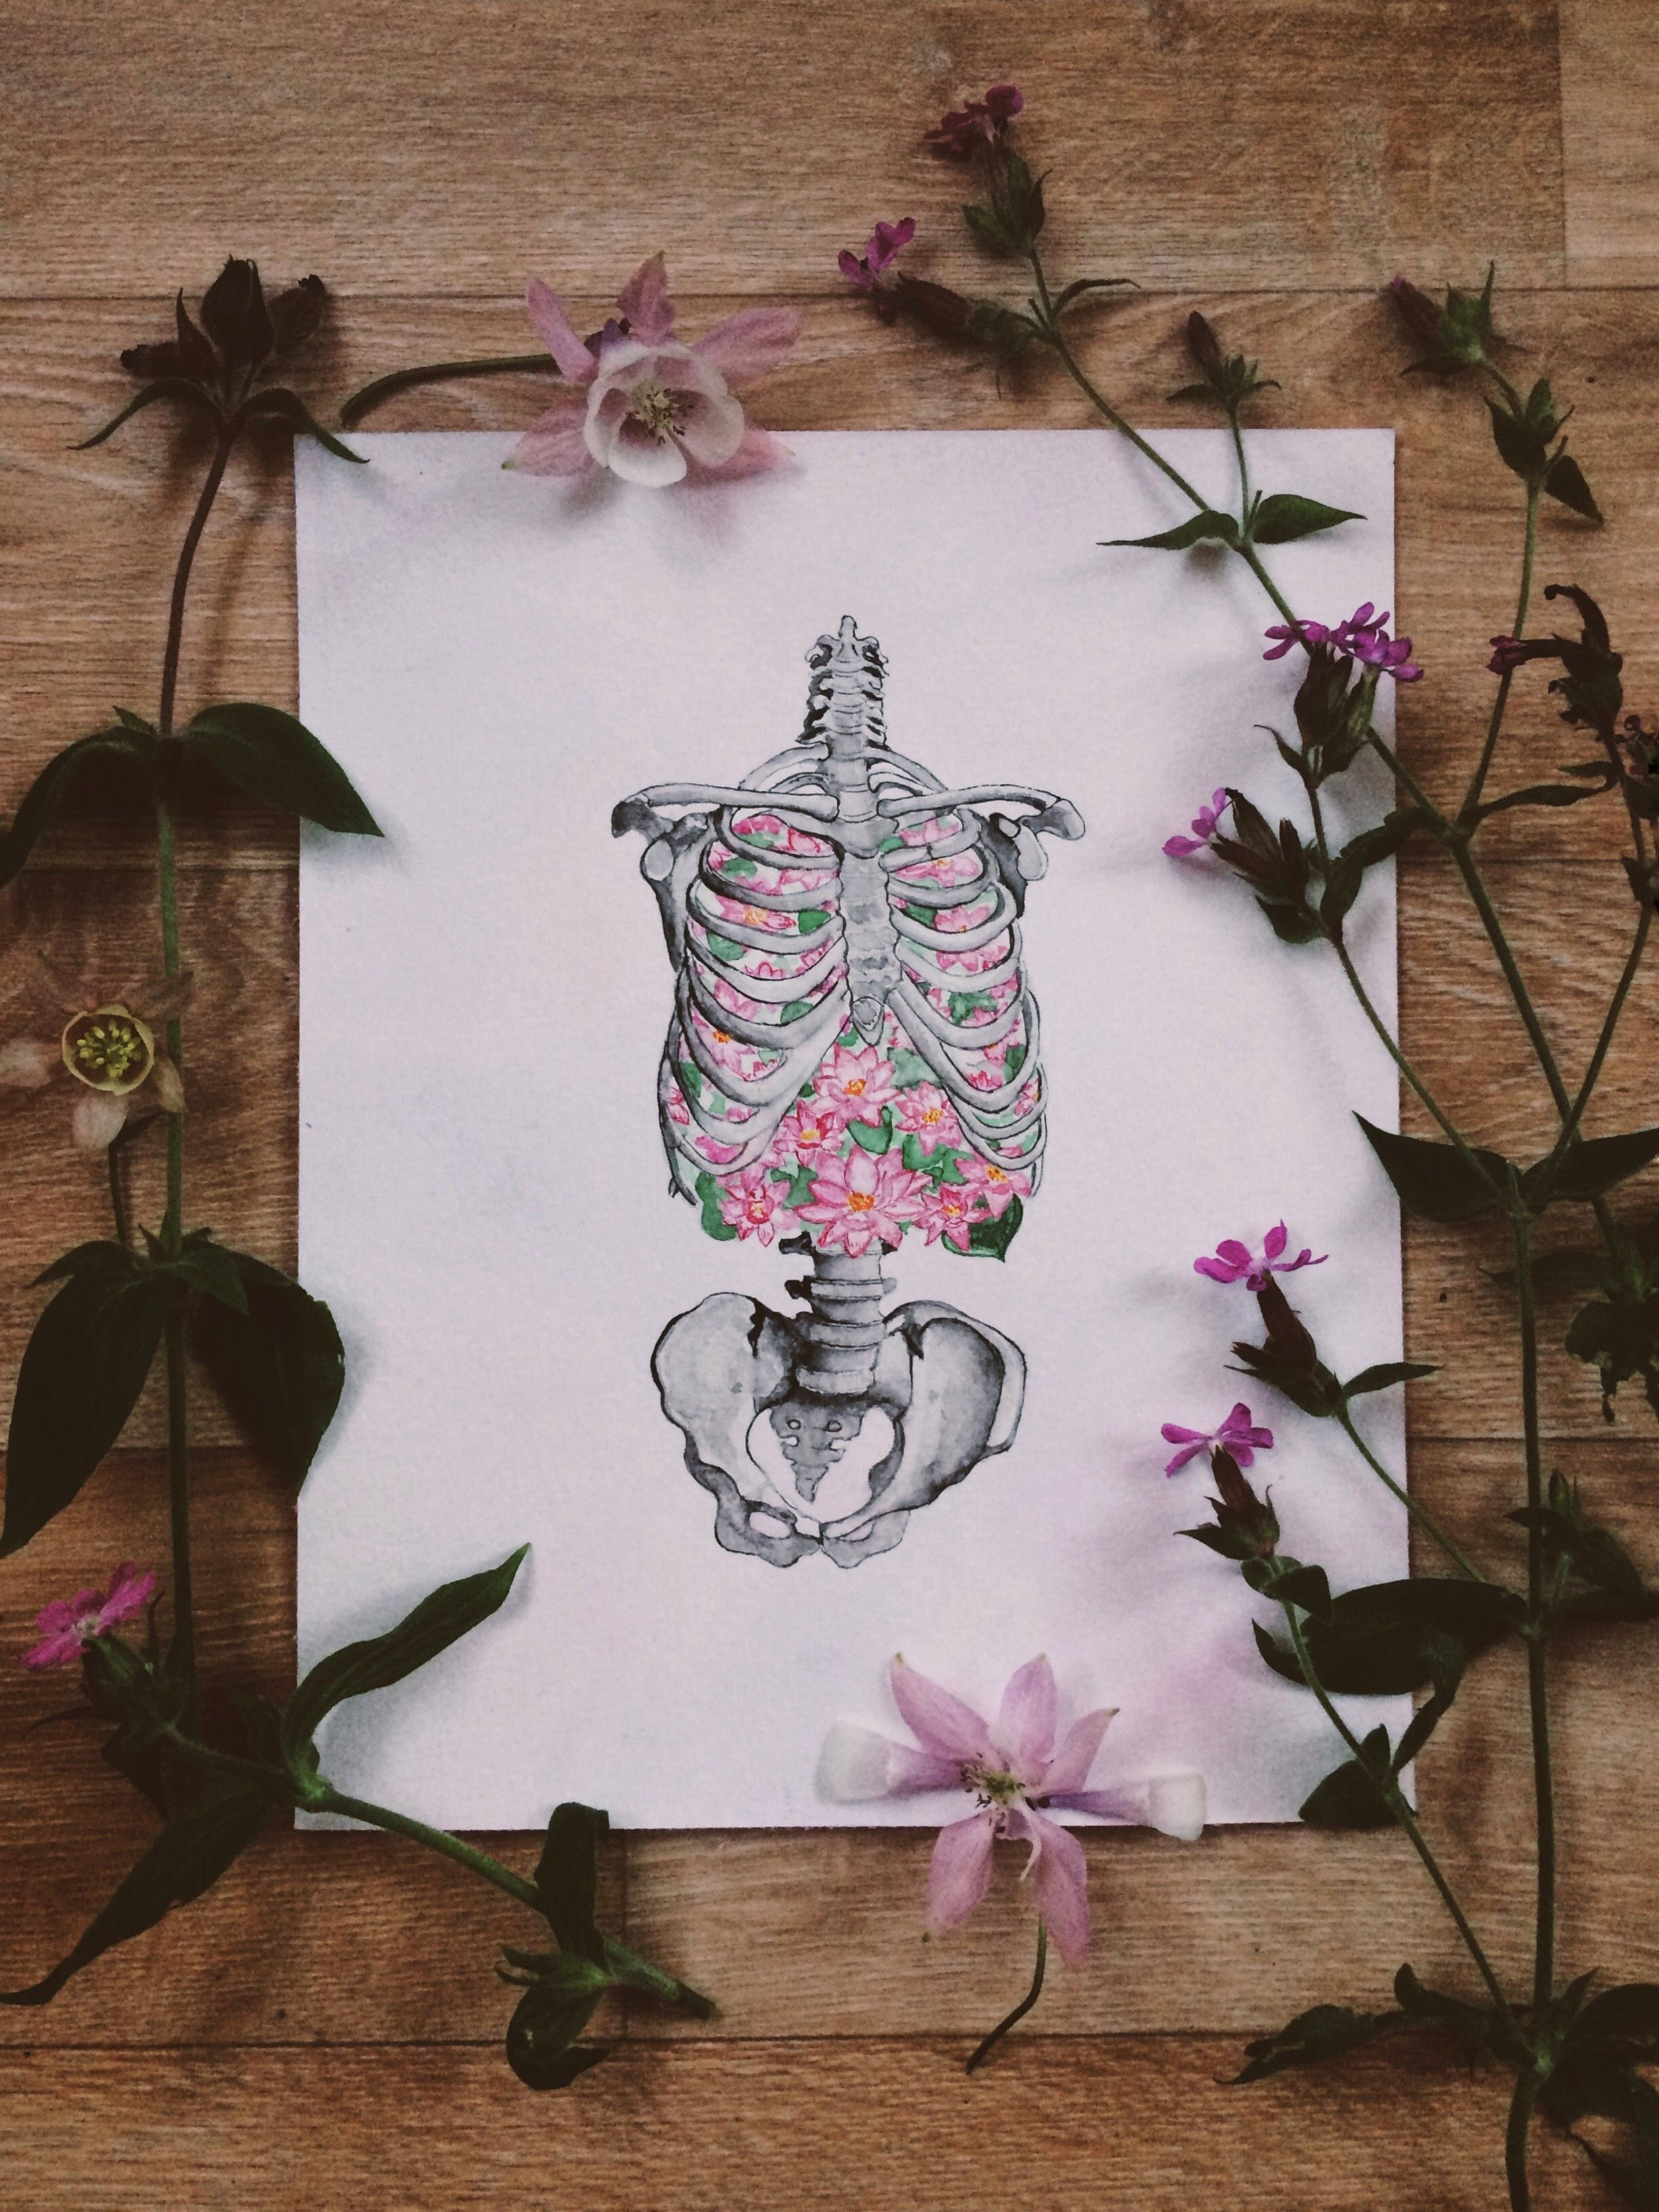 Ribs, lungs, flowers, skeleton, anatomy art, water lily in the lung ...